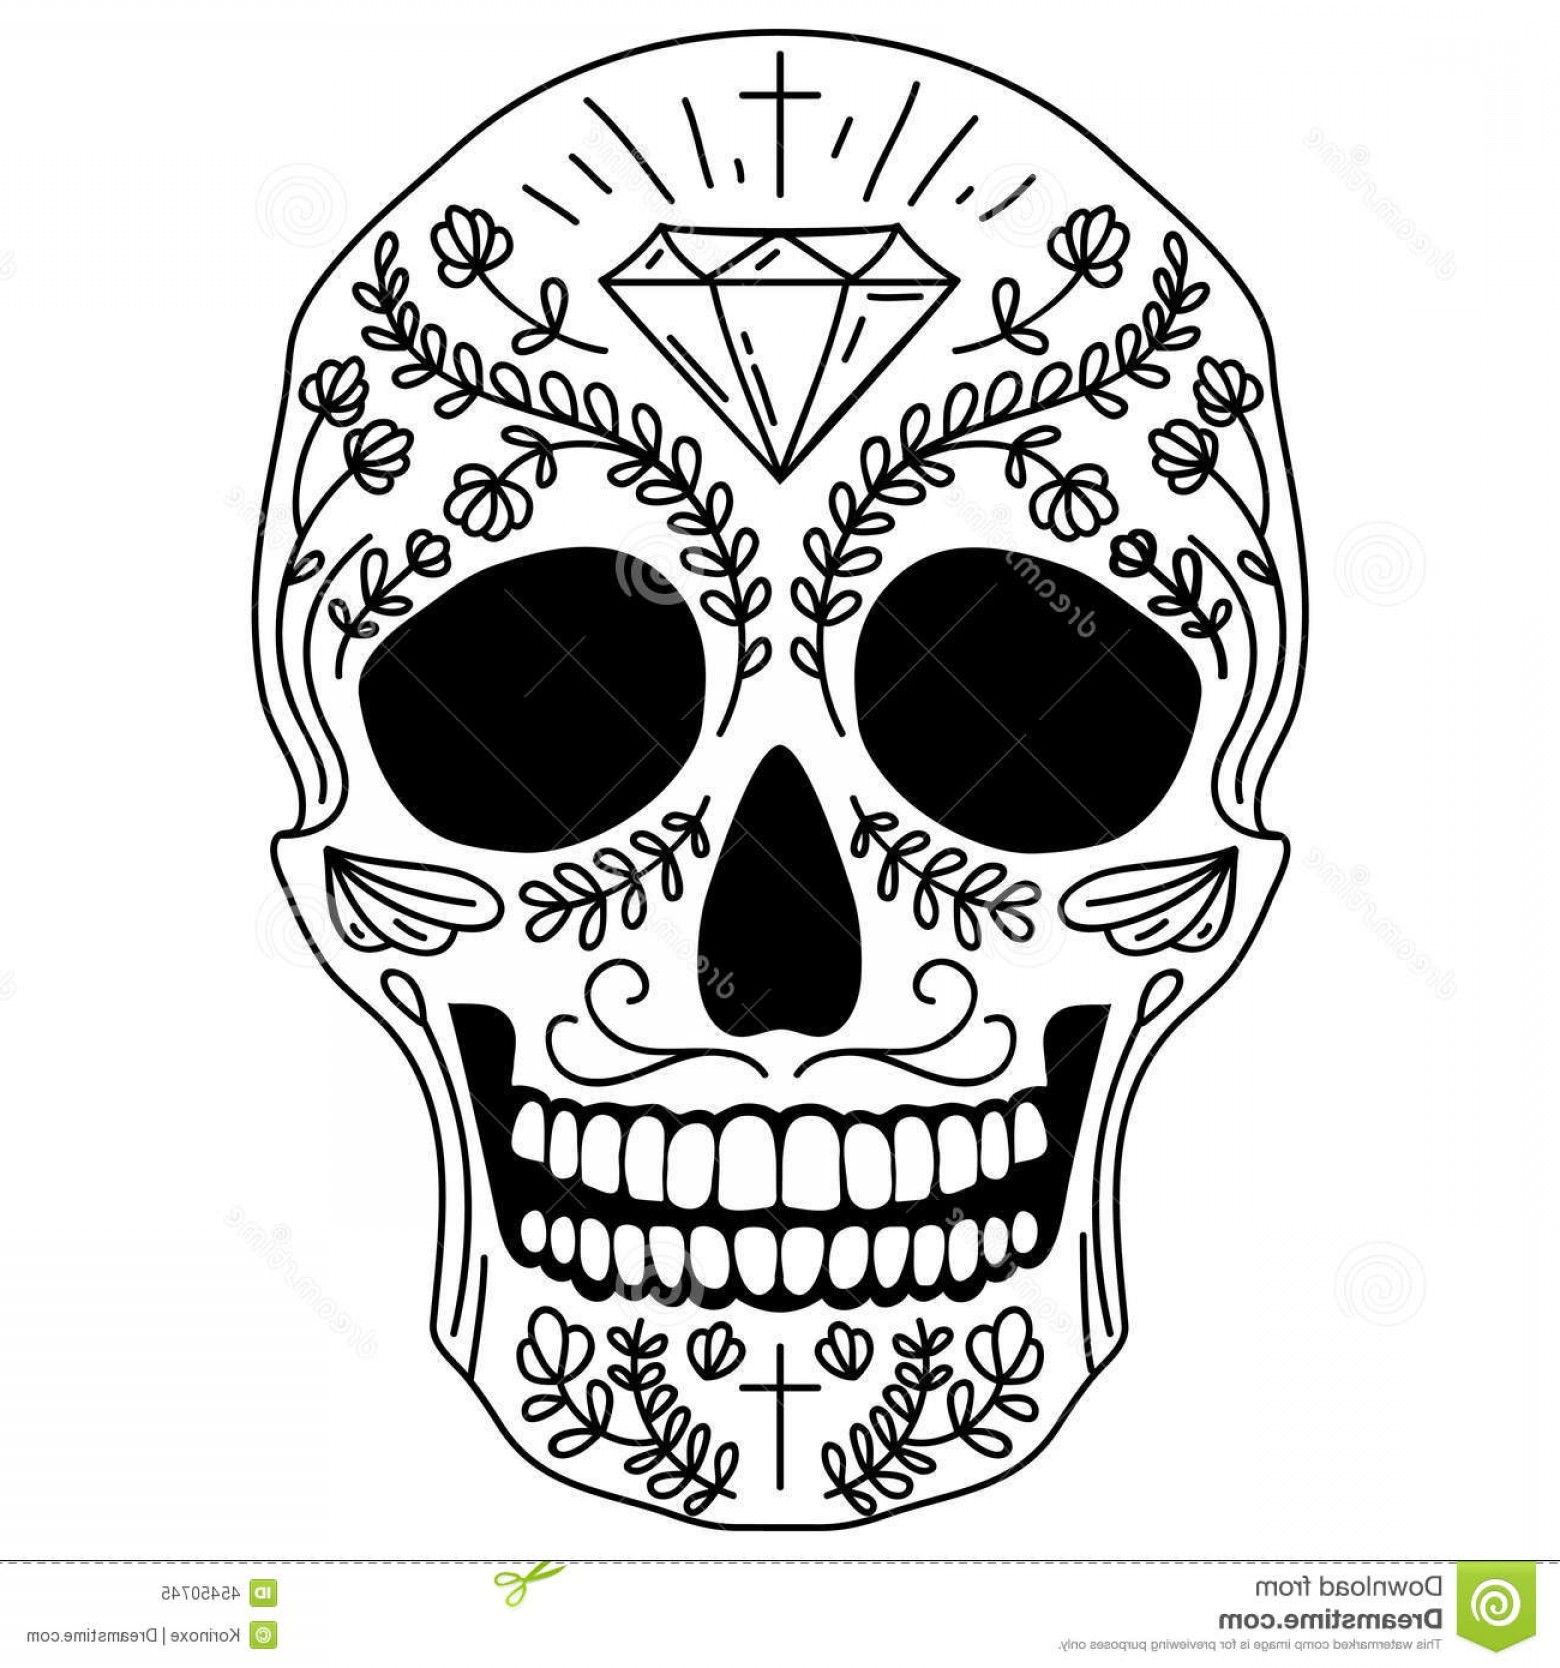 His And Hers Skulls Vector: Stock Illustration Black White Sugar Skull Vector Isolated Mexican Human Head Image